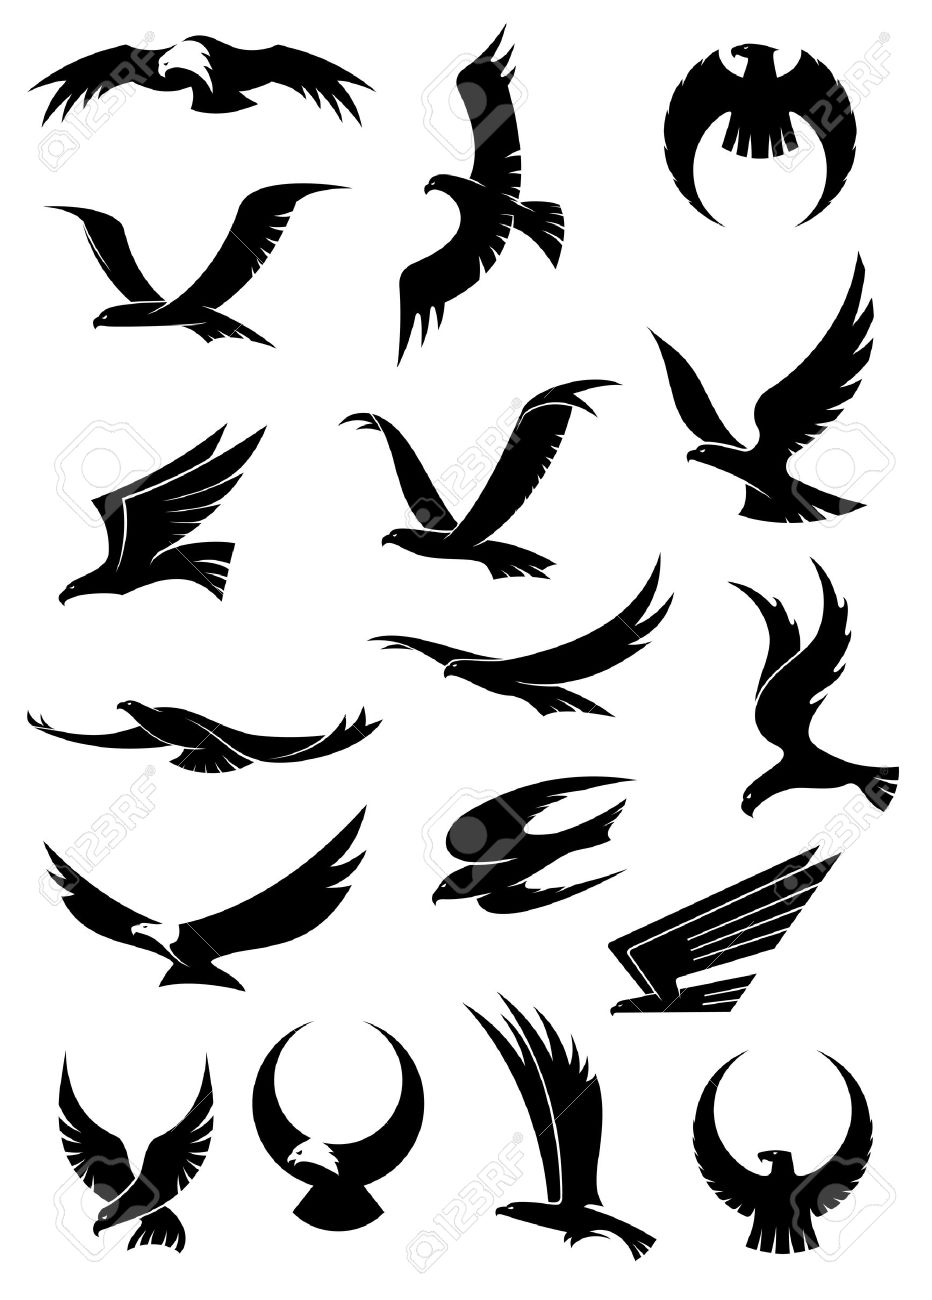 932x1300 Flying Eagle, Falcon And Hawk Icons Showing Different Wing